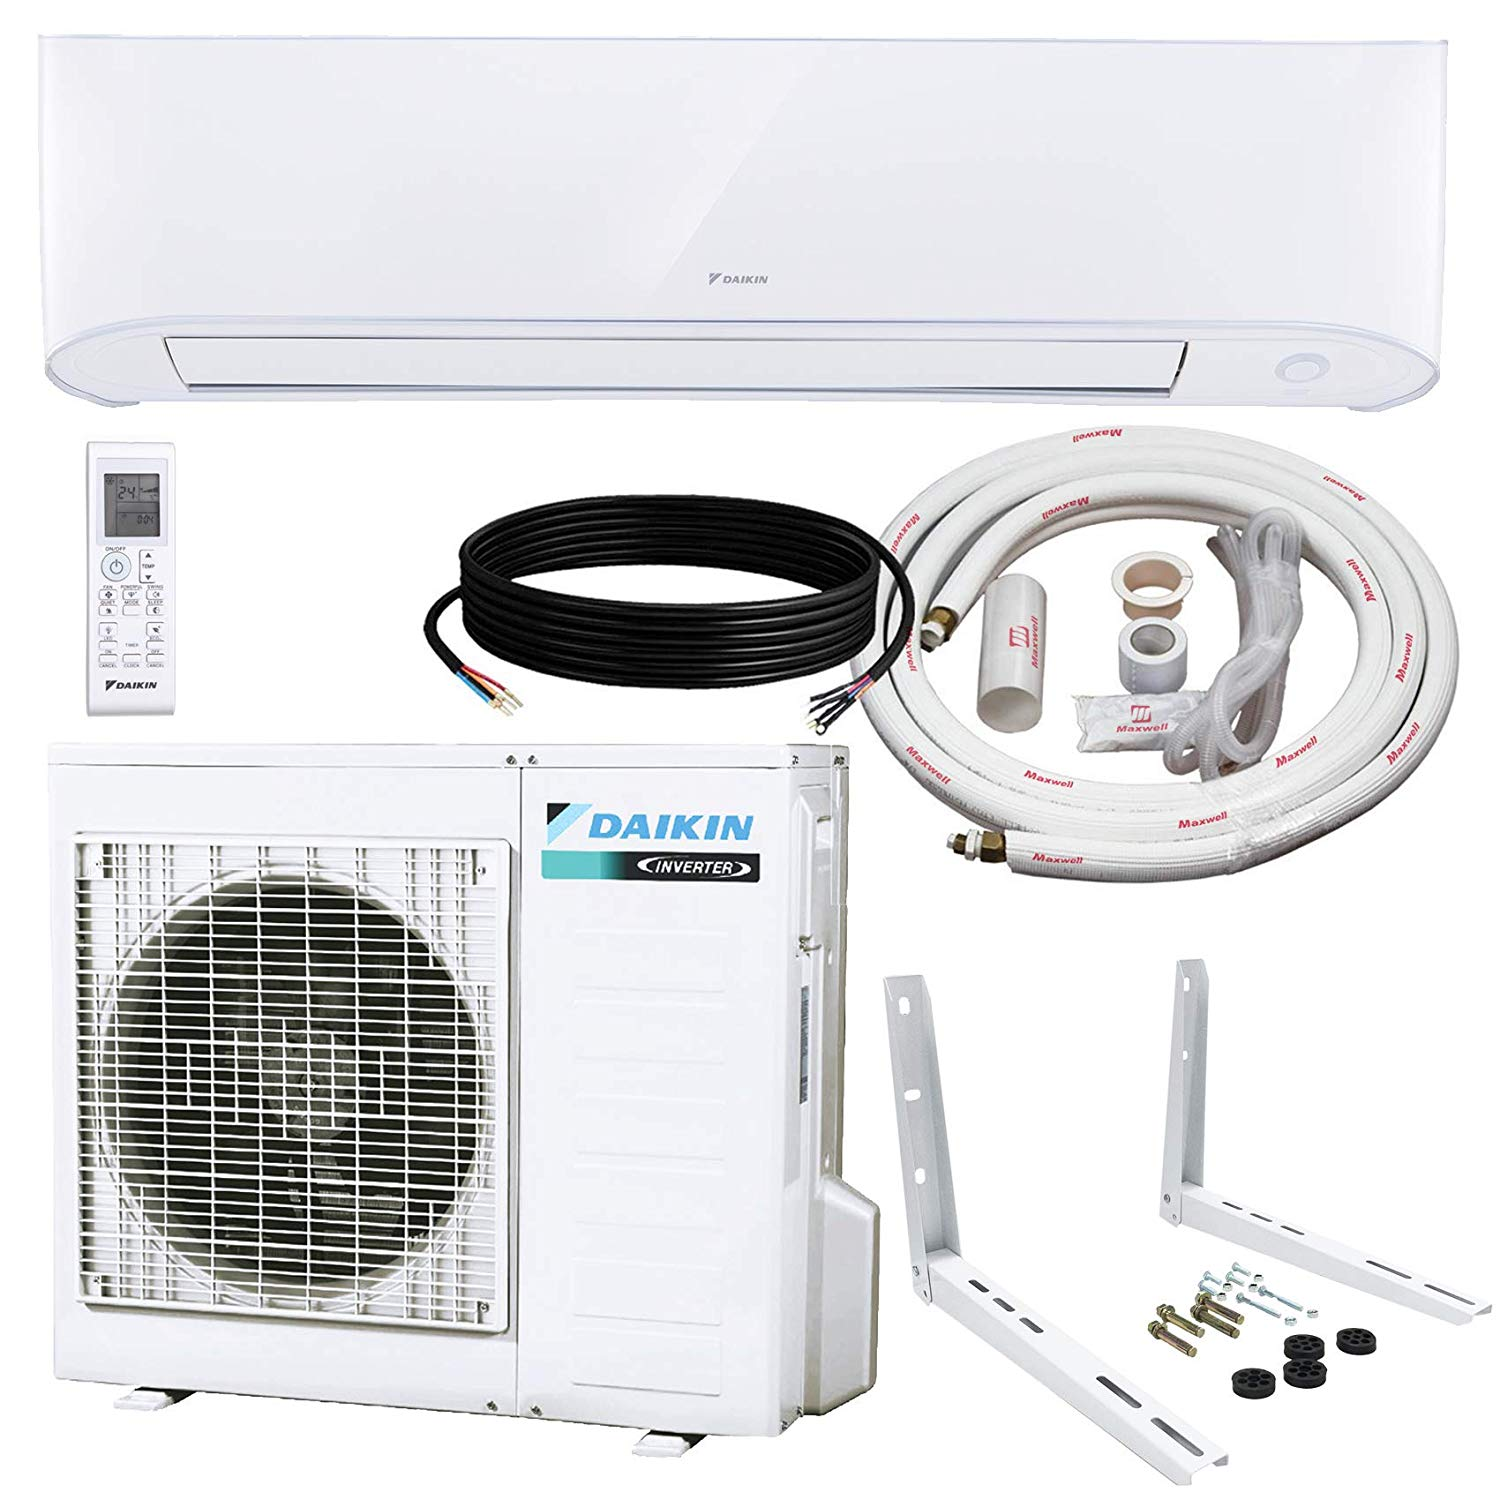 Best Heat Pump: Daikin 17 Seer Inverter